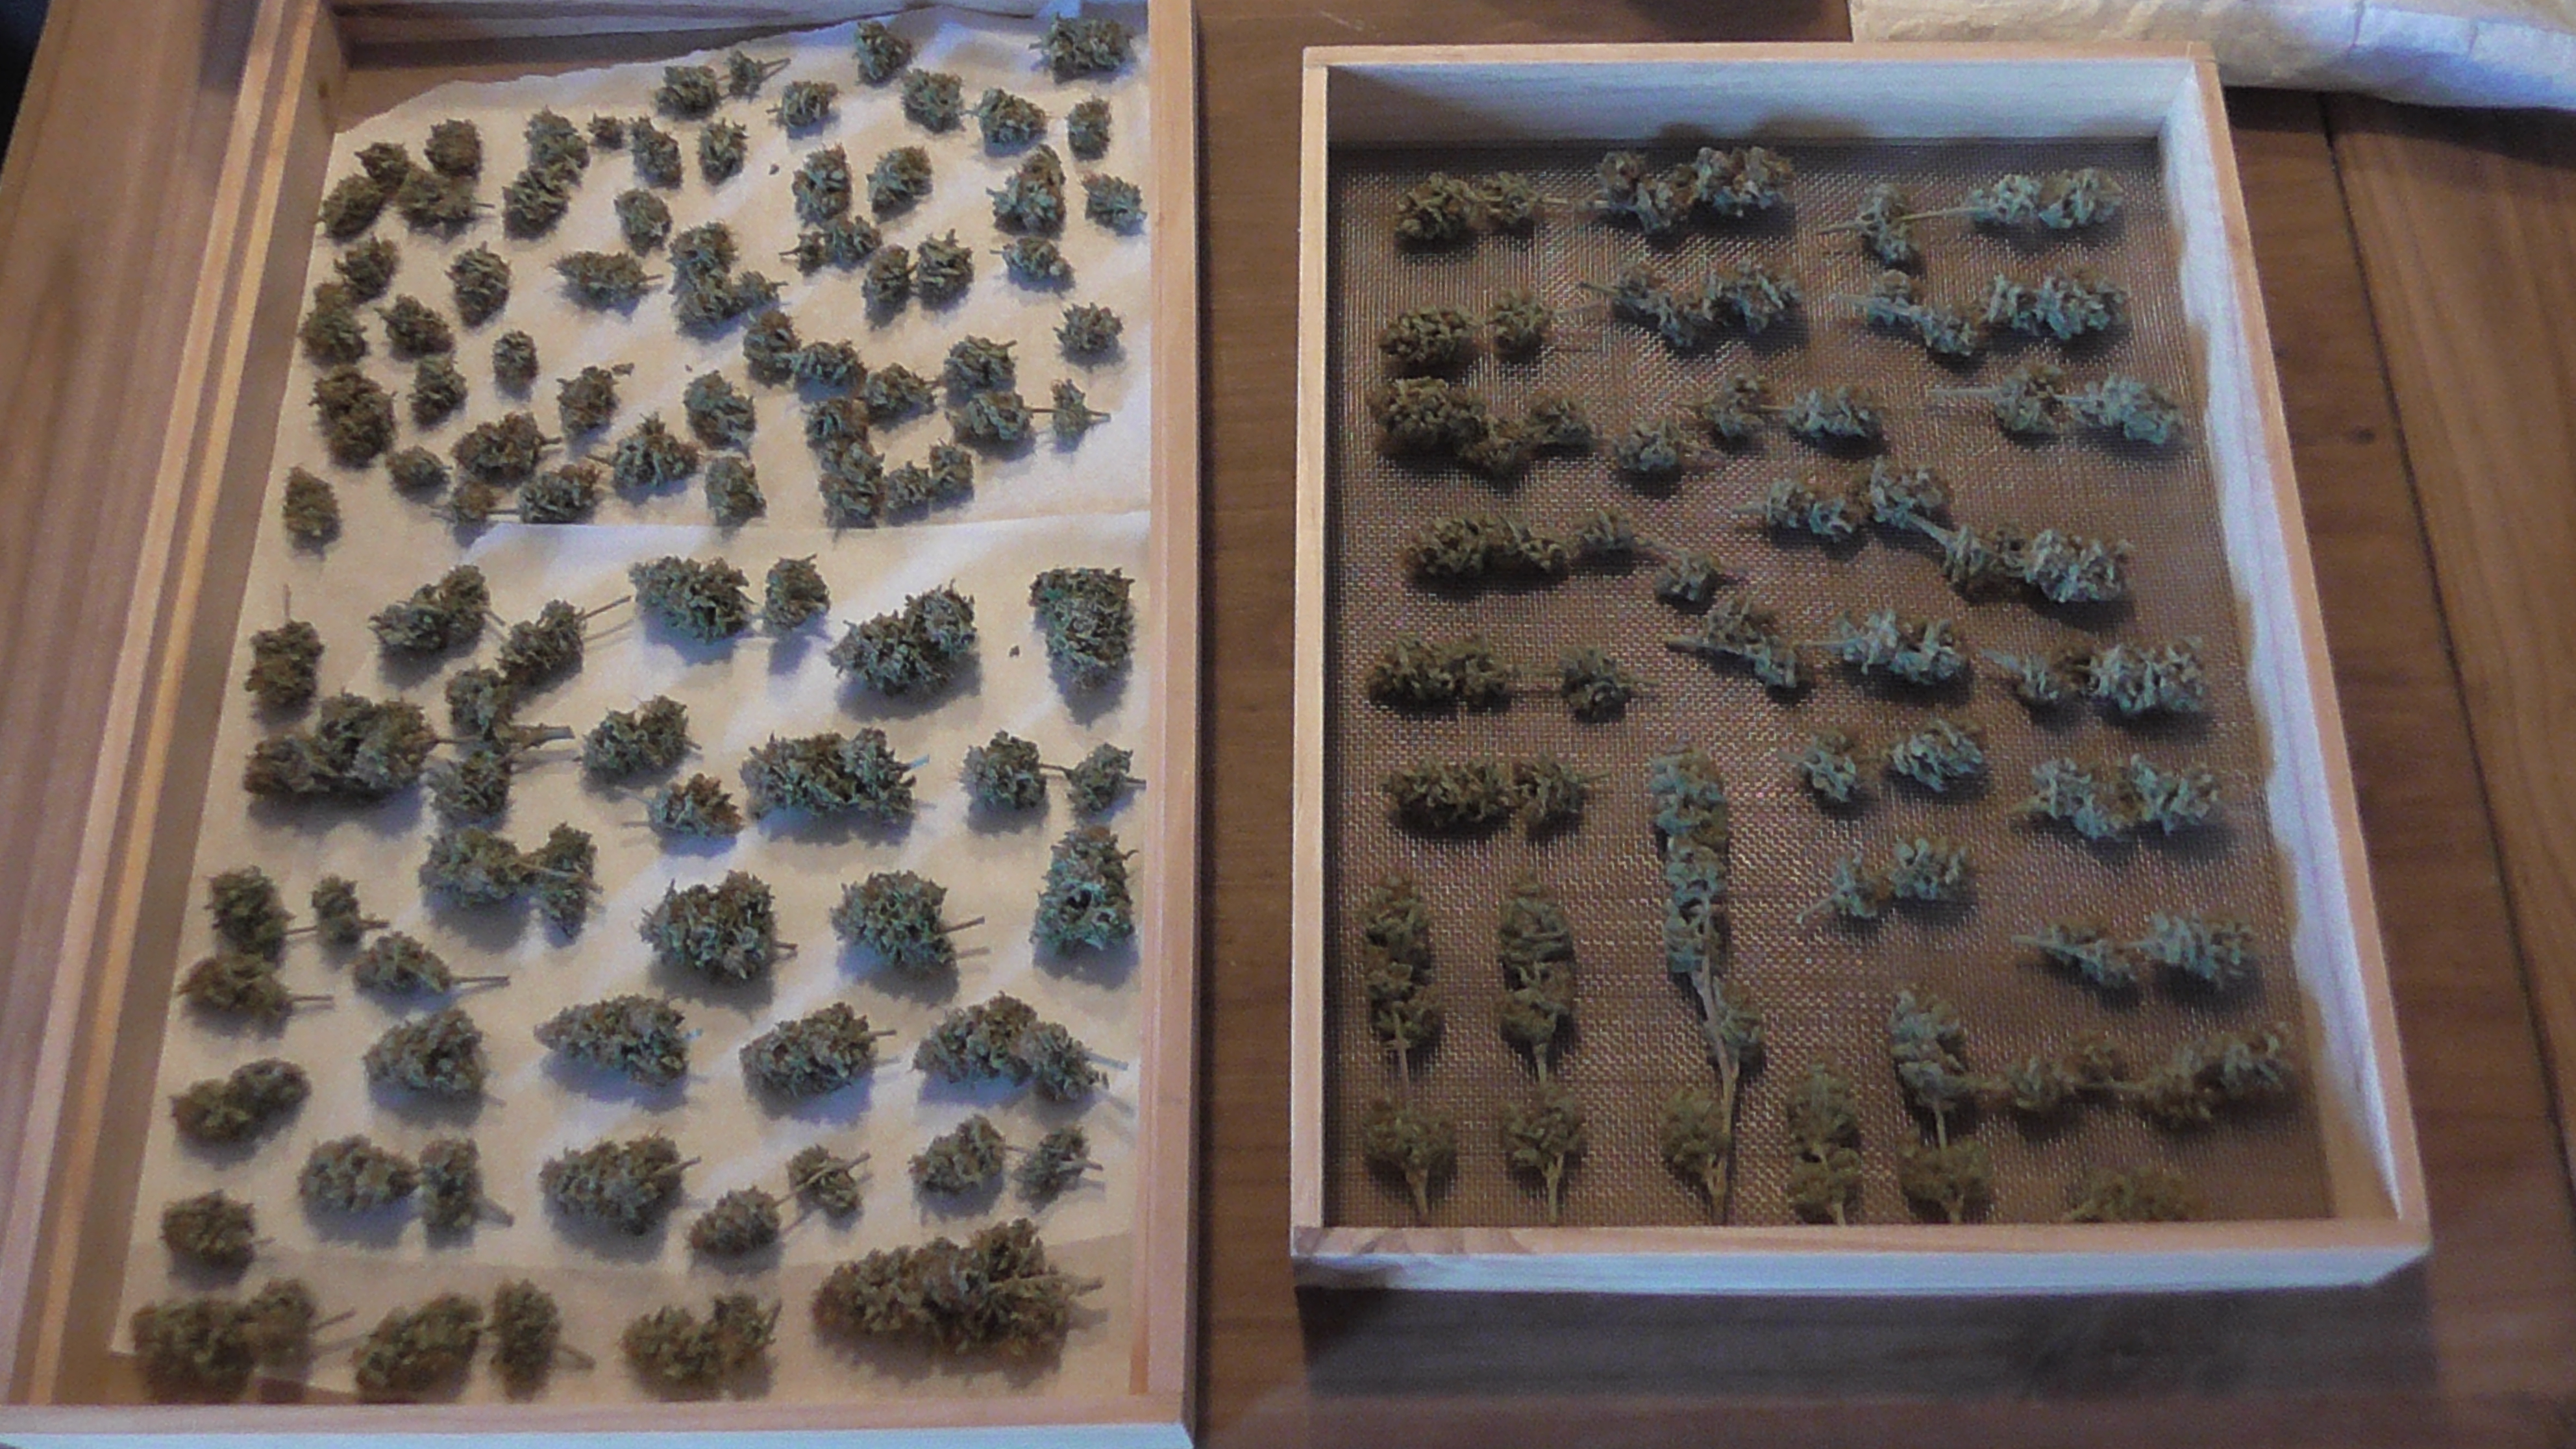 Cannabis Buds drying